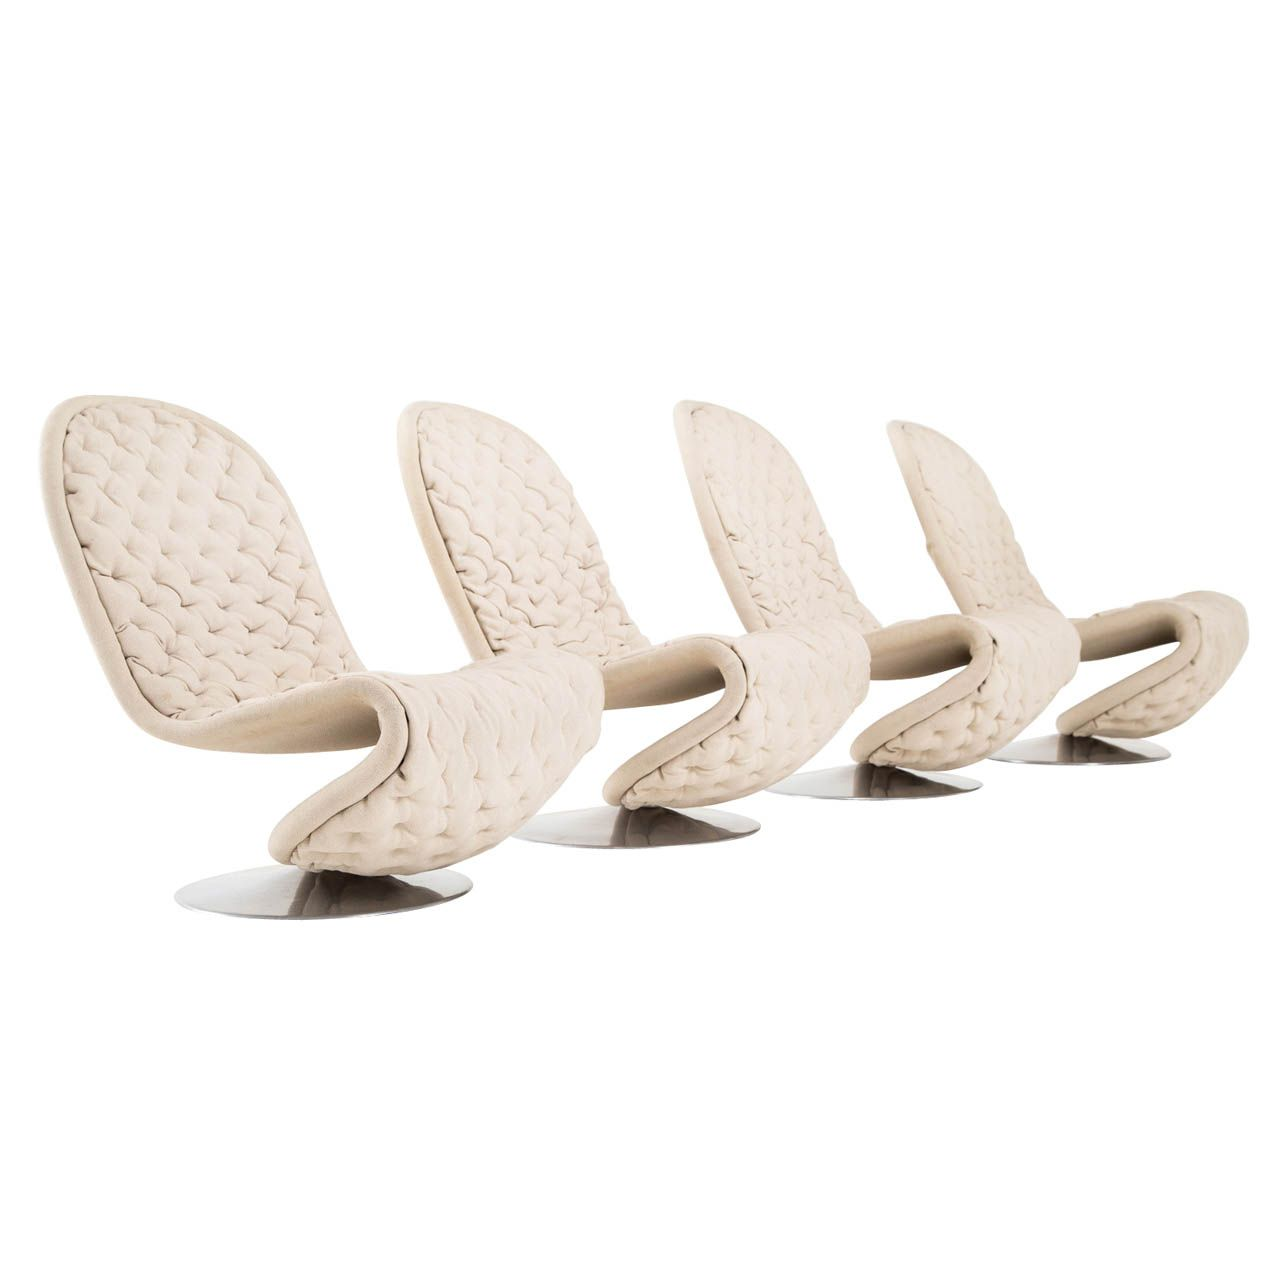 Set Of 4 Verner Panton System 1-2-3 Loungechairs in Beige Wool | From a unique collection of antique and modern lounge chairs at http://www.1stdibs.com/furniture/seating/lounge-chairs/